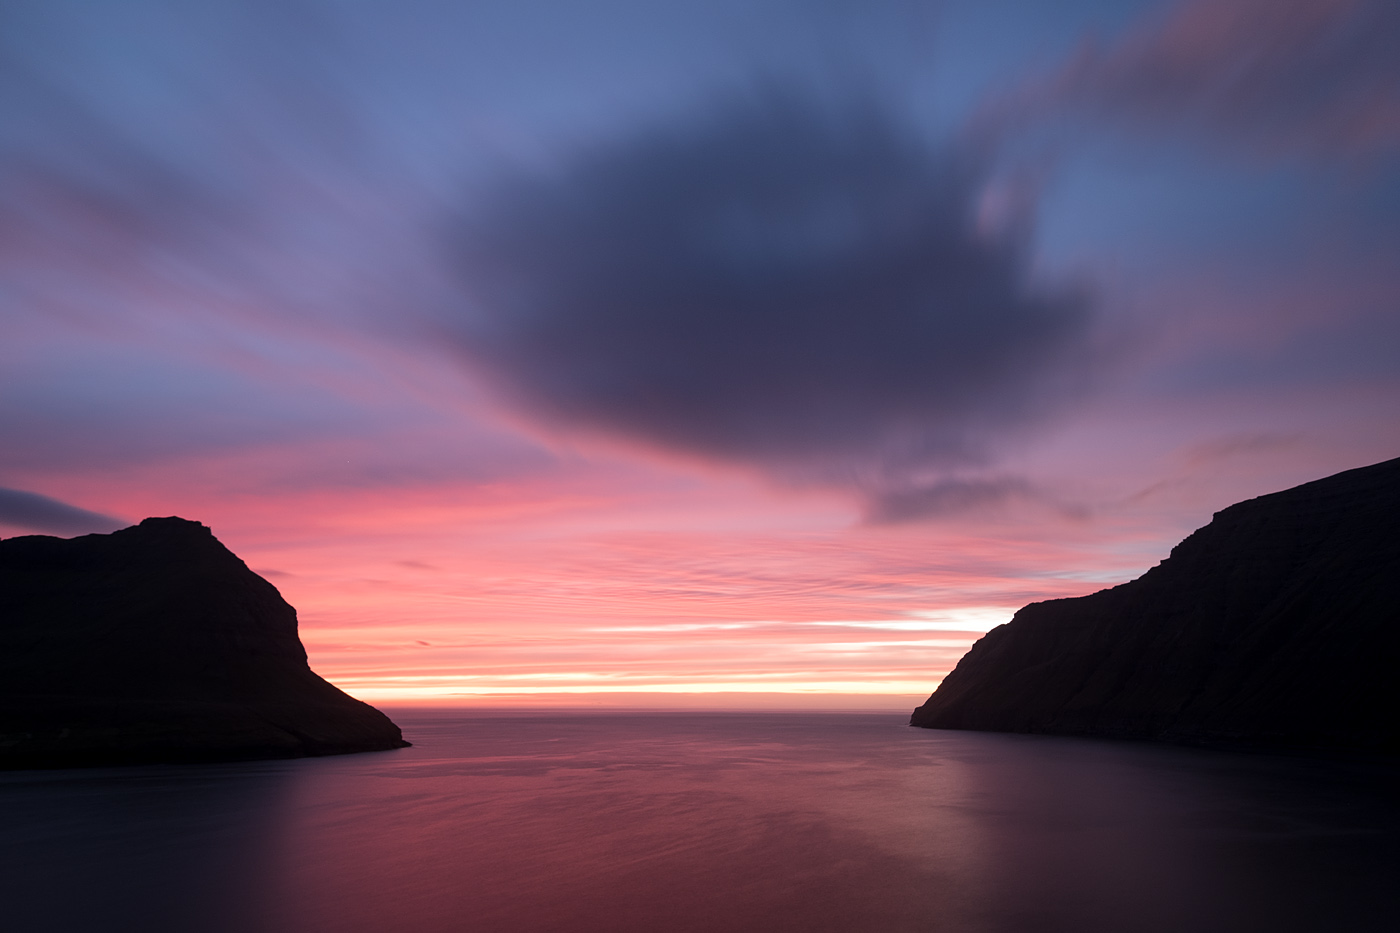 Faroe Islands sunset #2